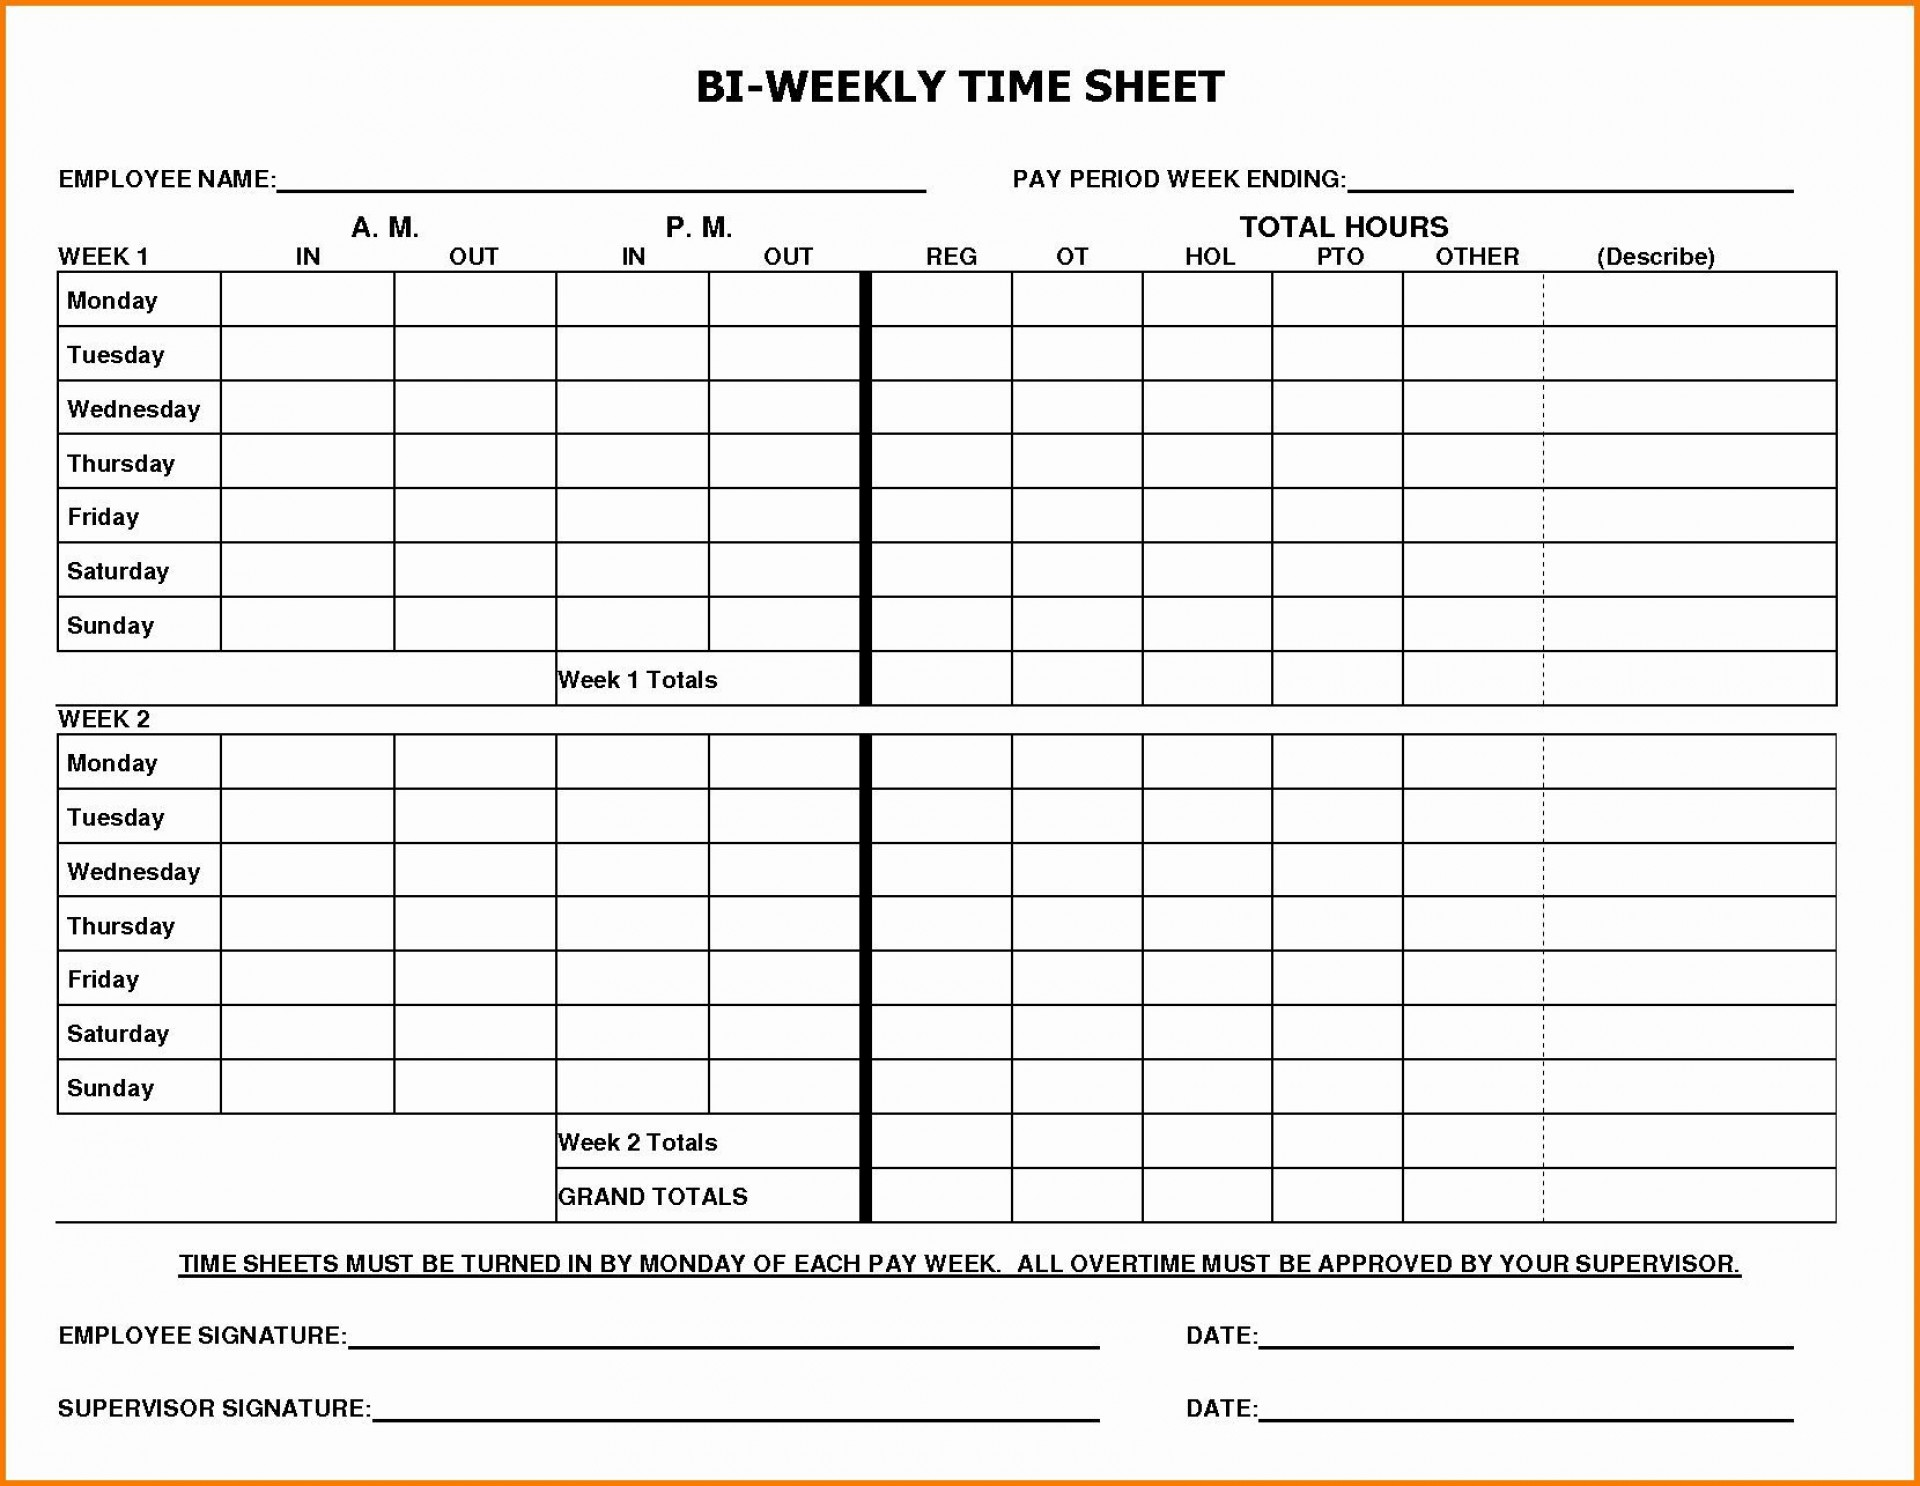 002 Marvelou Free Biweekly Timesheet Template High Definition  Excel Bi Weekly Time Card1920